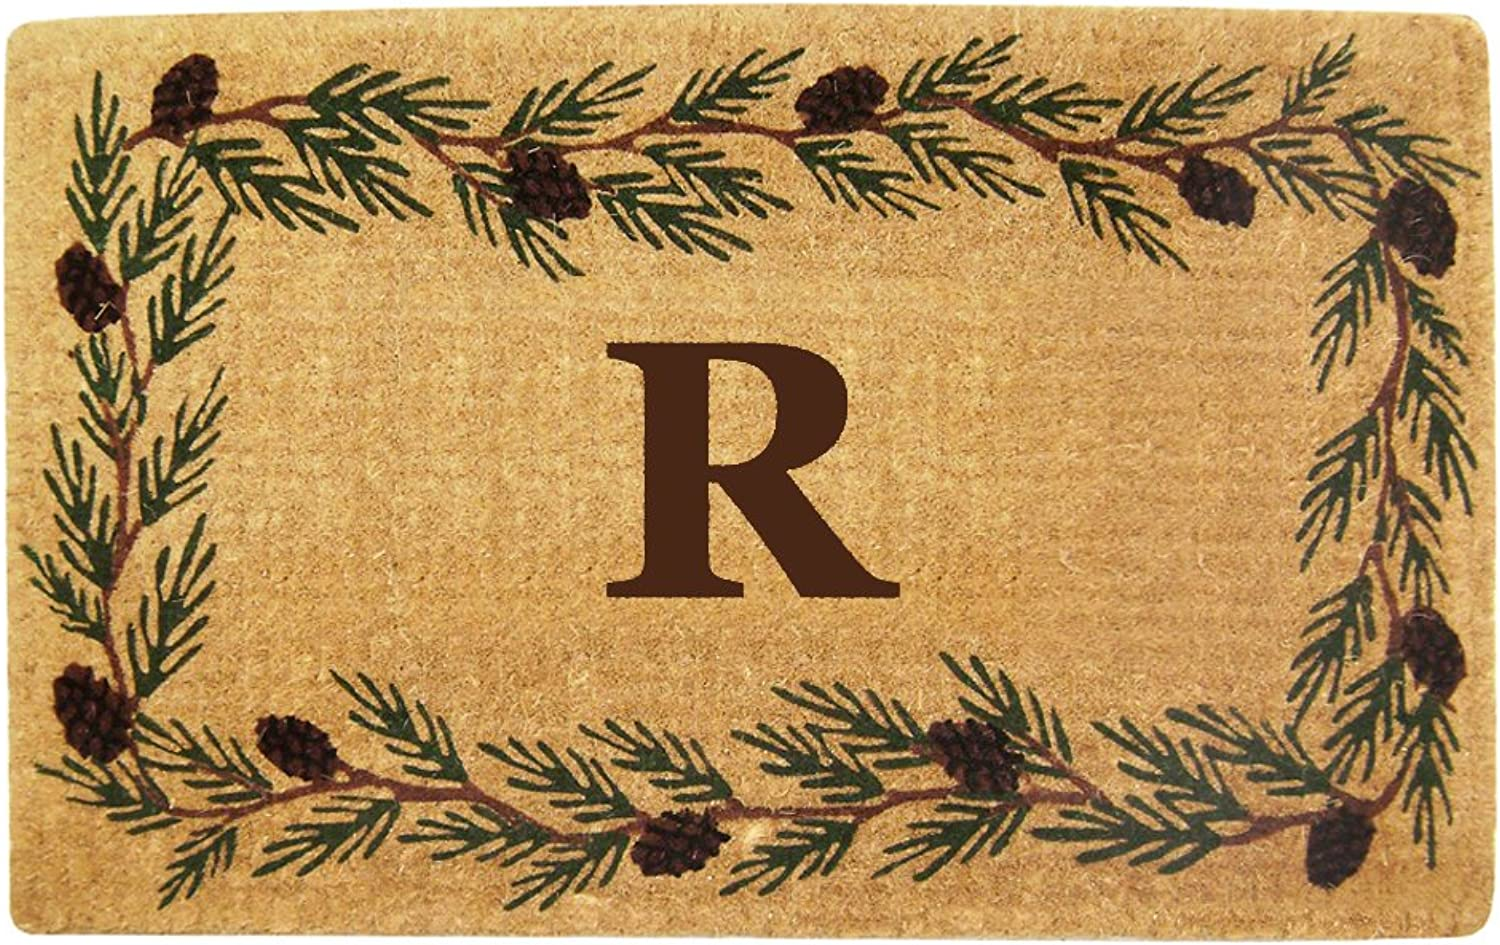 Nedia Home Heavy Duty Coco Mat with Evergreen Border, 22 by 36-Inch, Monogrammed R